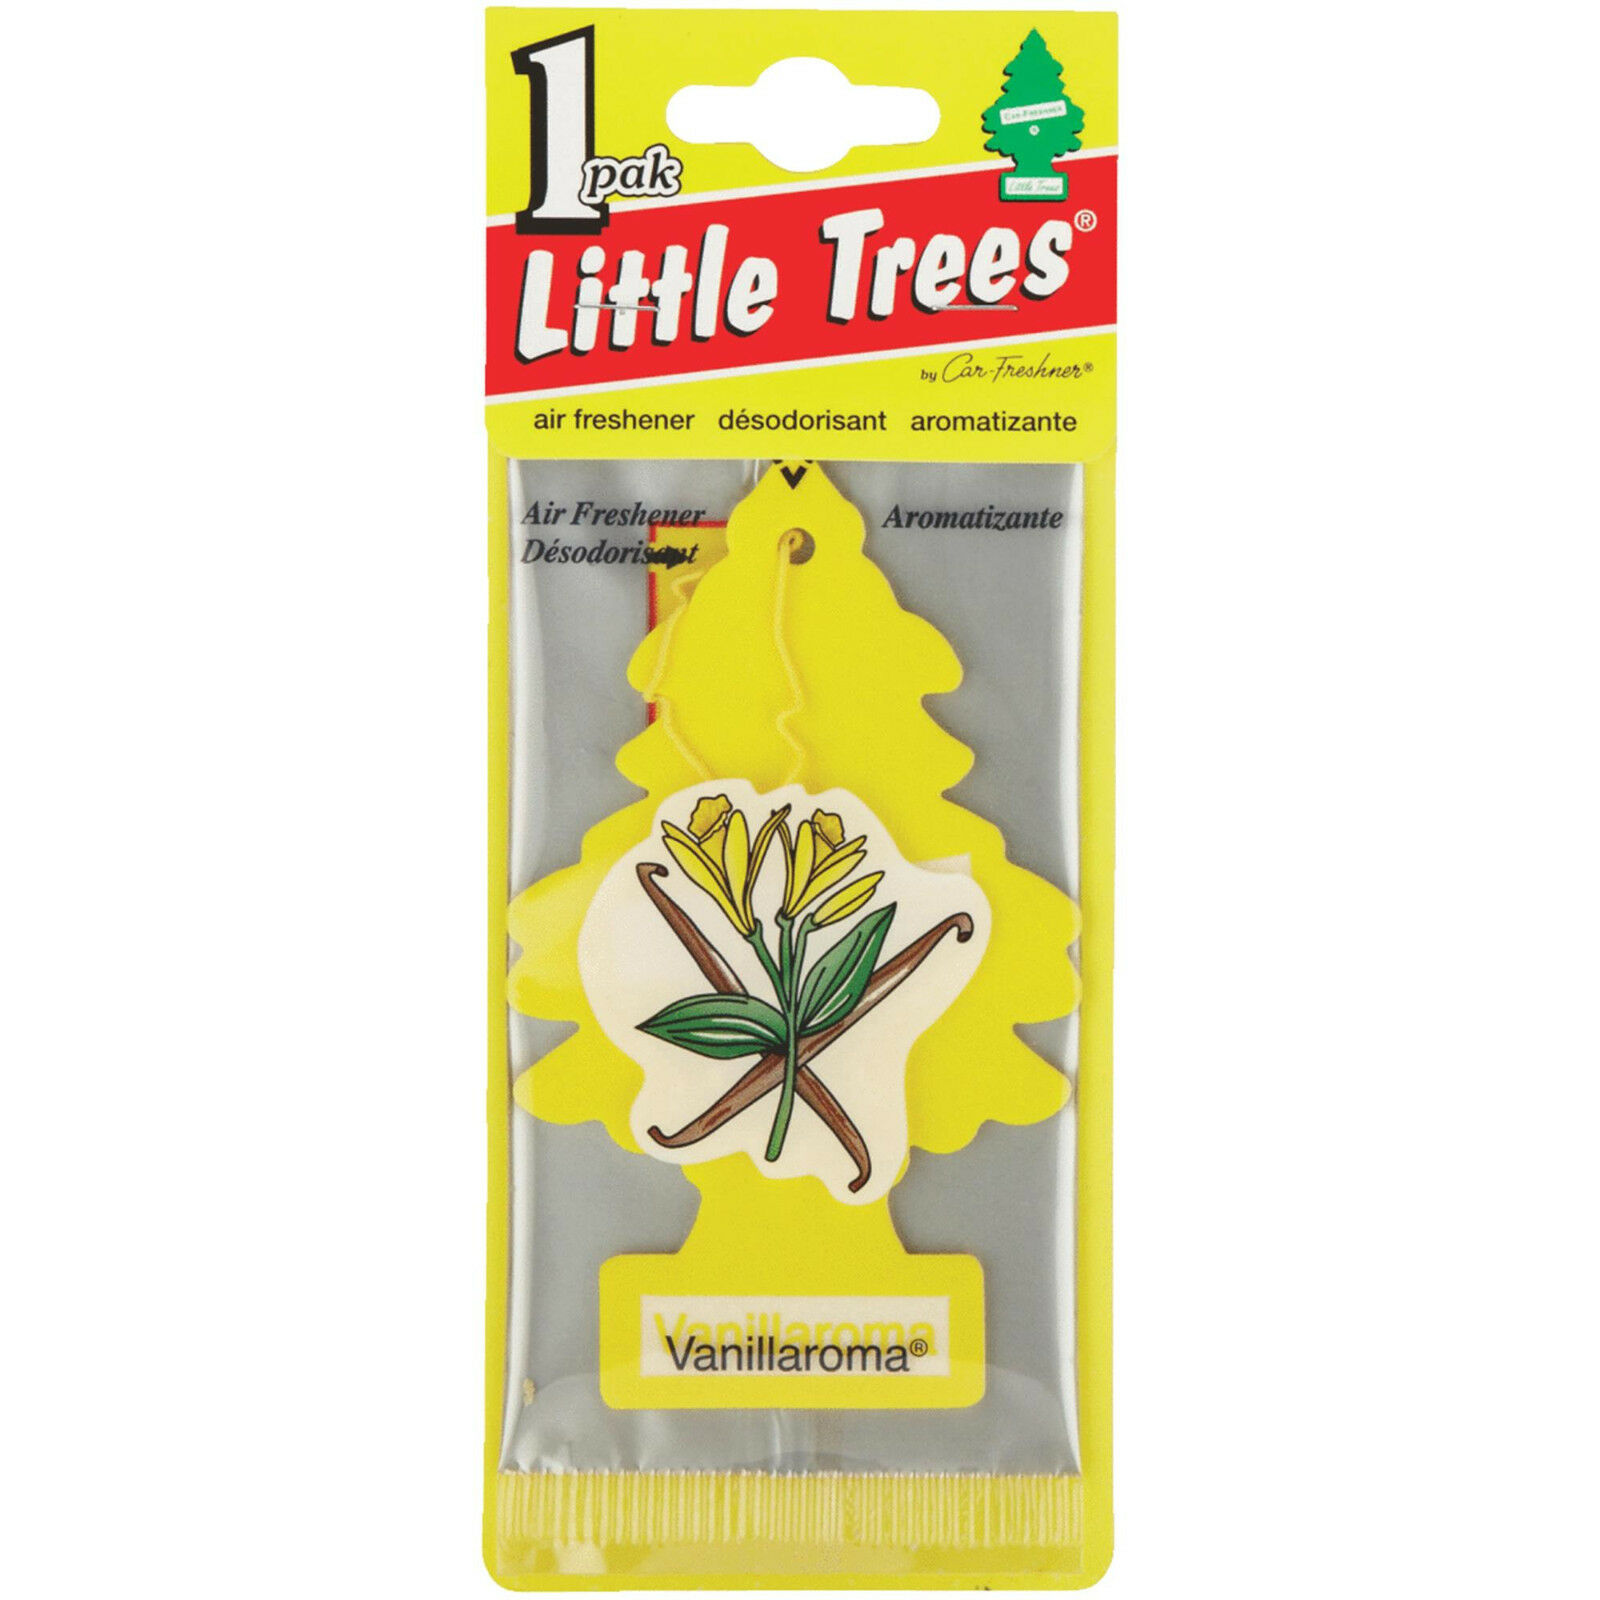 Car freshener online best place to buy work boots